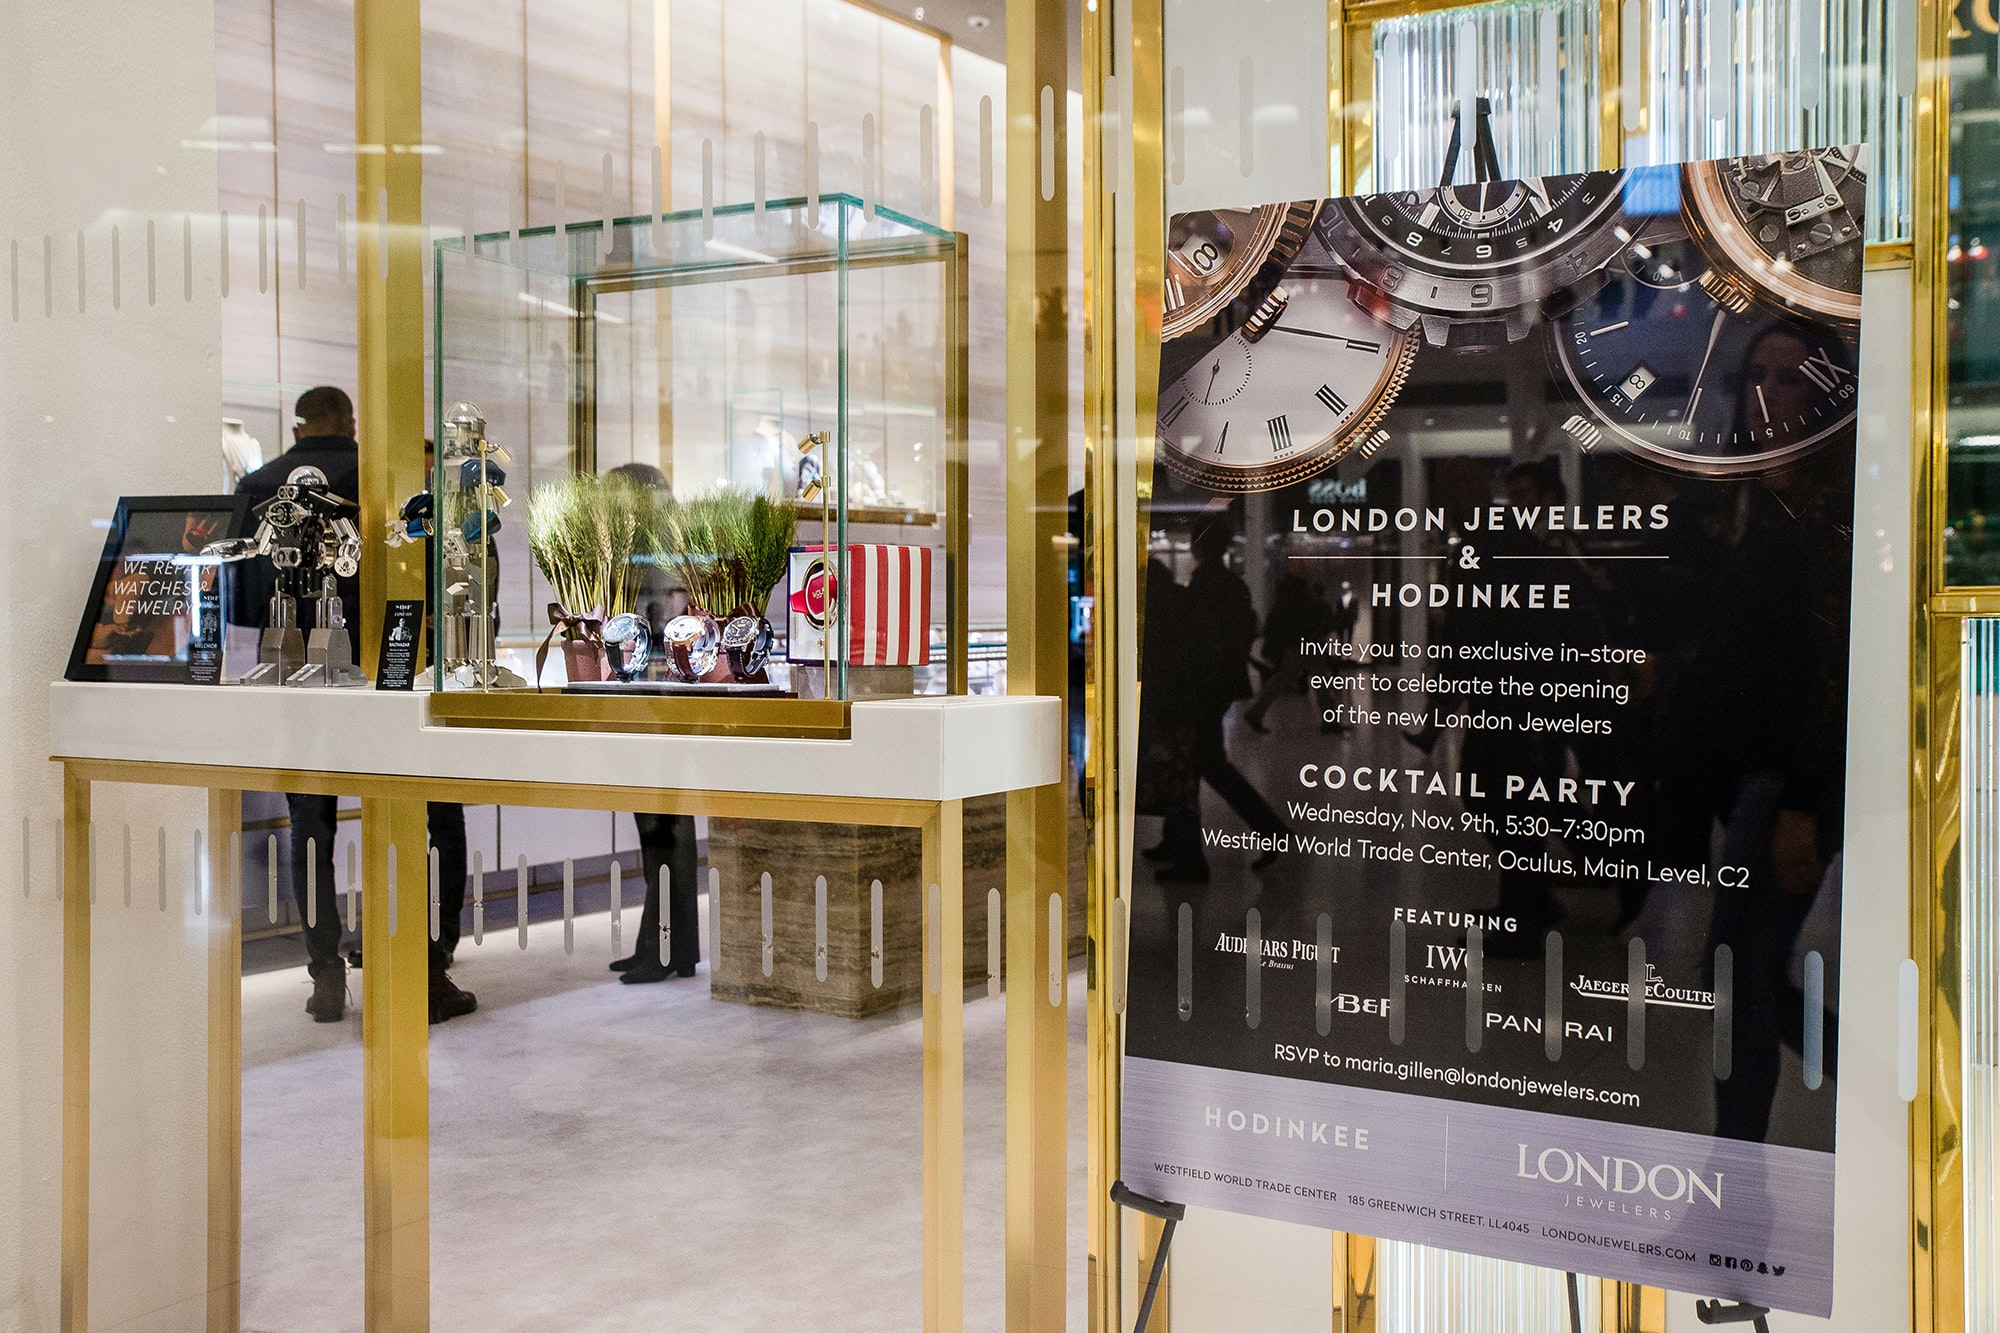 Photo Report: HODINKEE Celebrates London Jewelers' New Store In New York City's Oculus Photo Report: HODINKEE Celebrates London Jewelers' New Store In New York City's Oculus 20161109 LondonJewelersxHodinkee 033